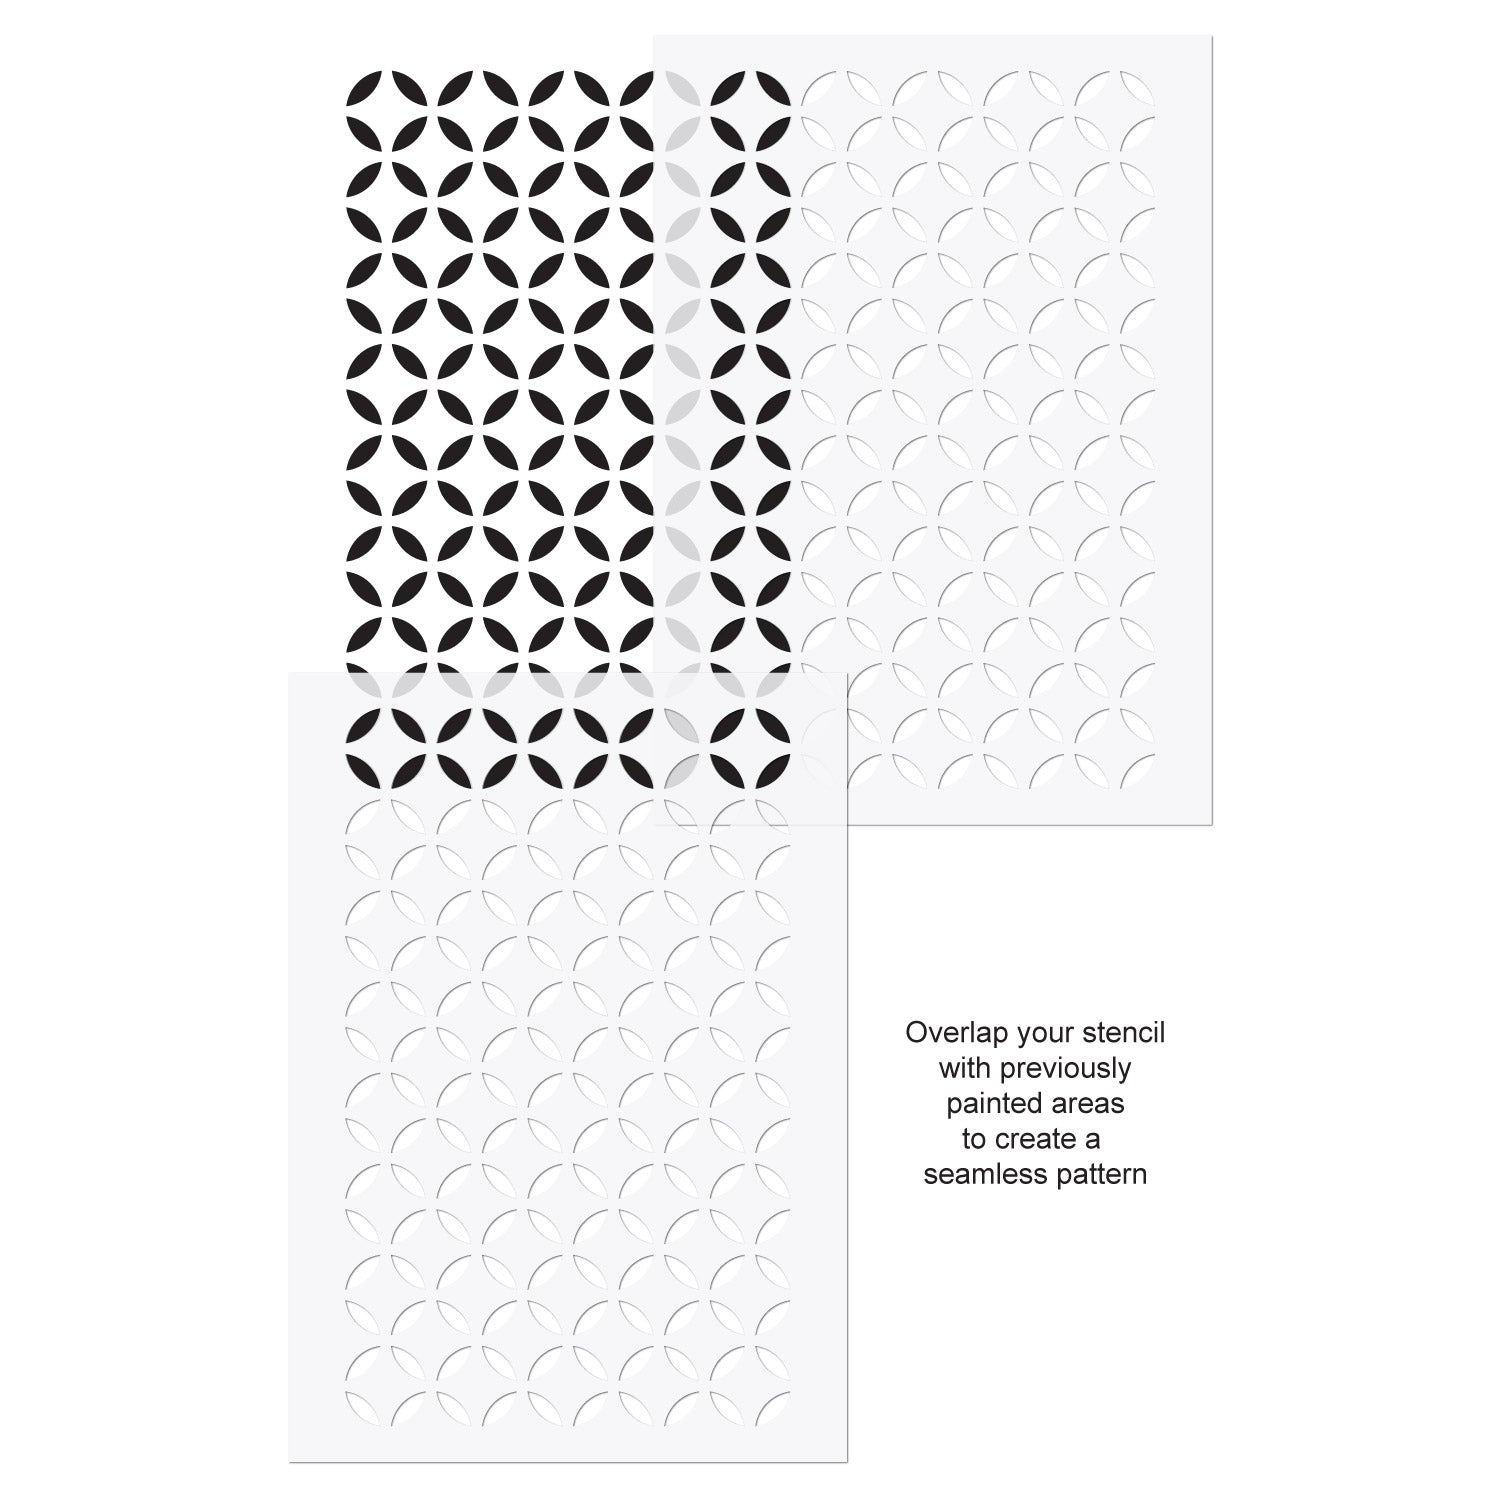 CraftStar Moroccan Lattice Stencil use guide